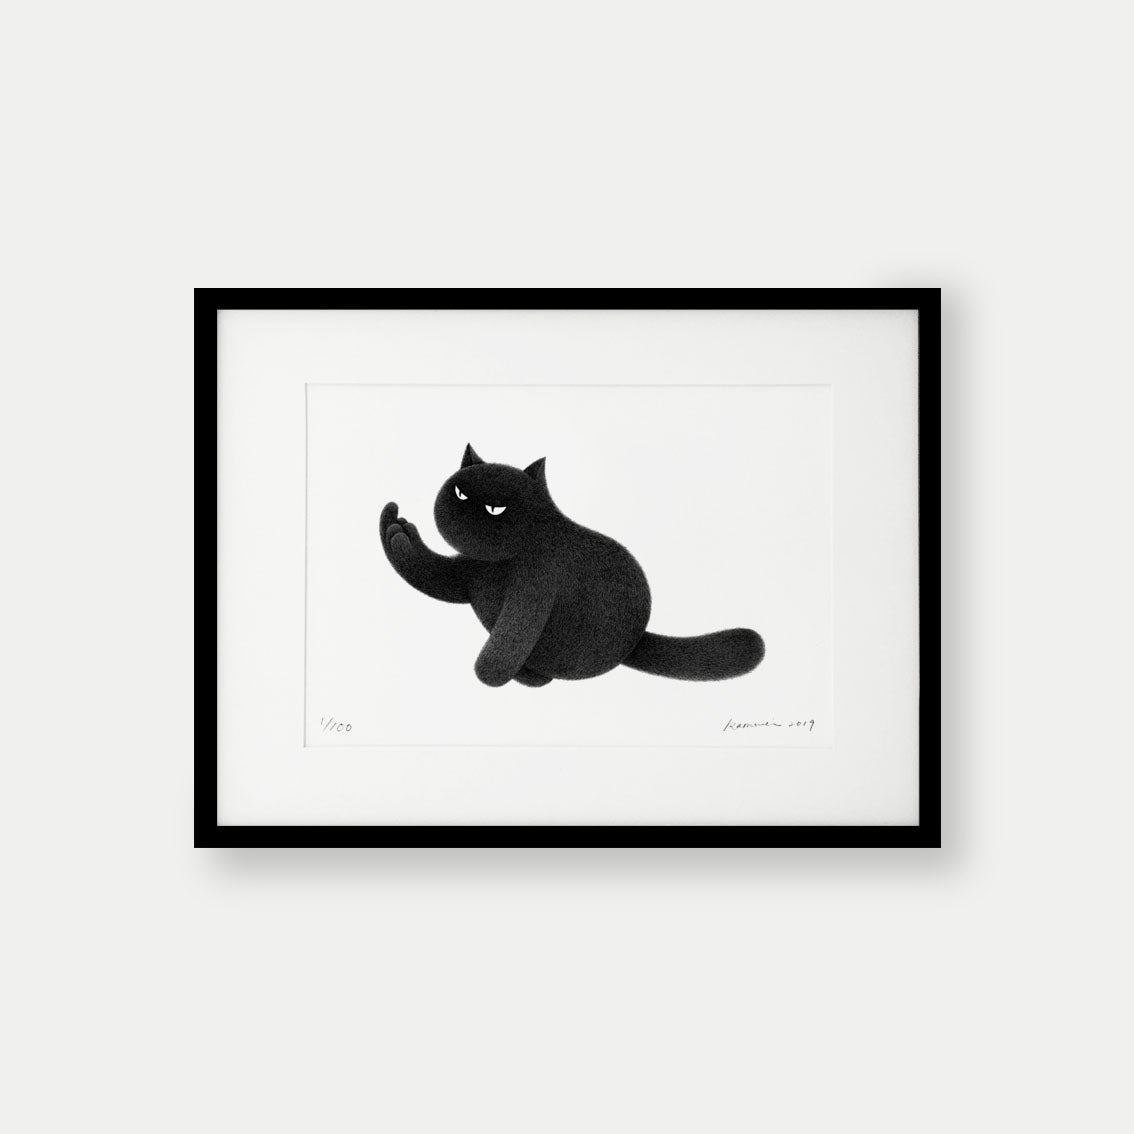 Image of Kitty No.38 – A4 Limited Edition Print